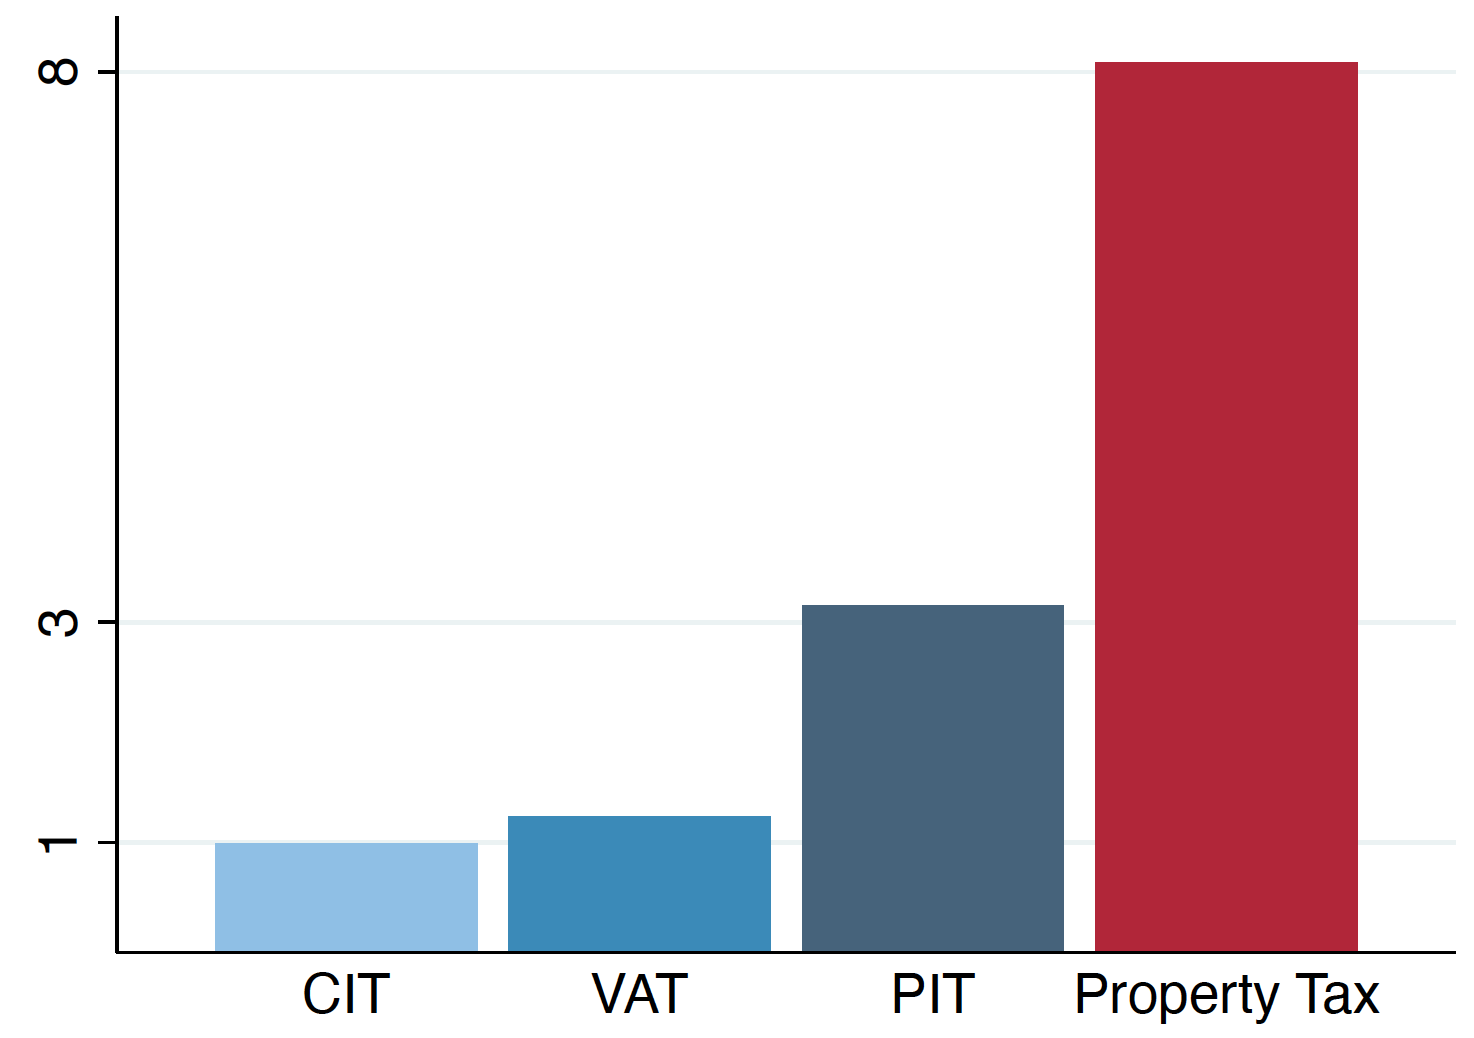 how_developing_countries_can_boost_their_property_tax_revenues_evidence_from_mexico_city